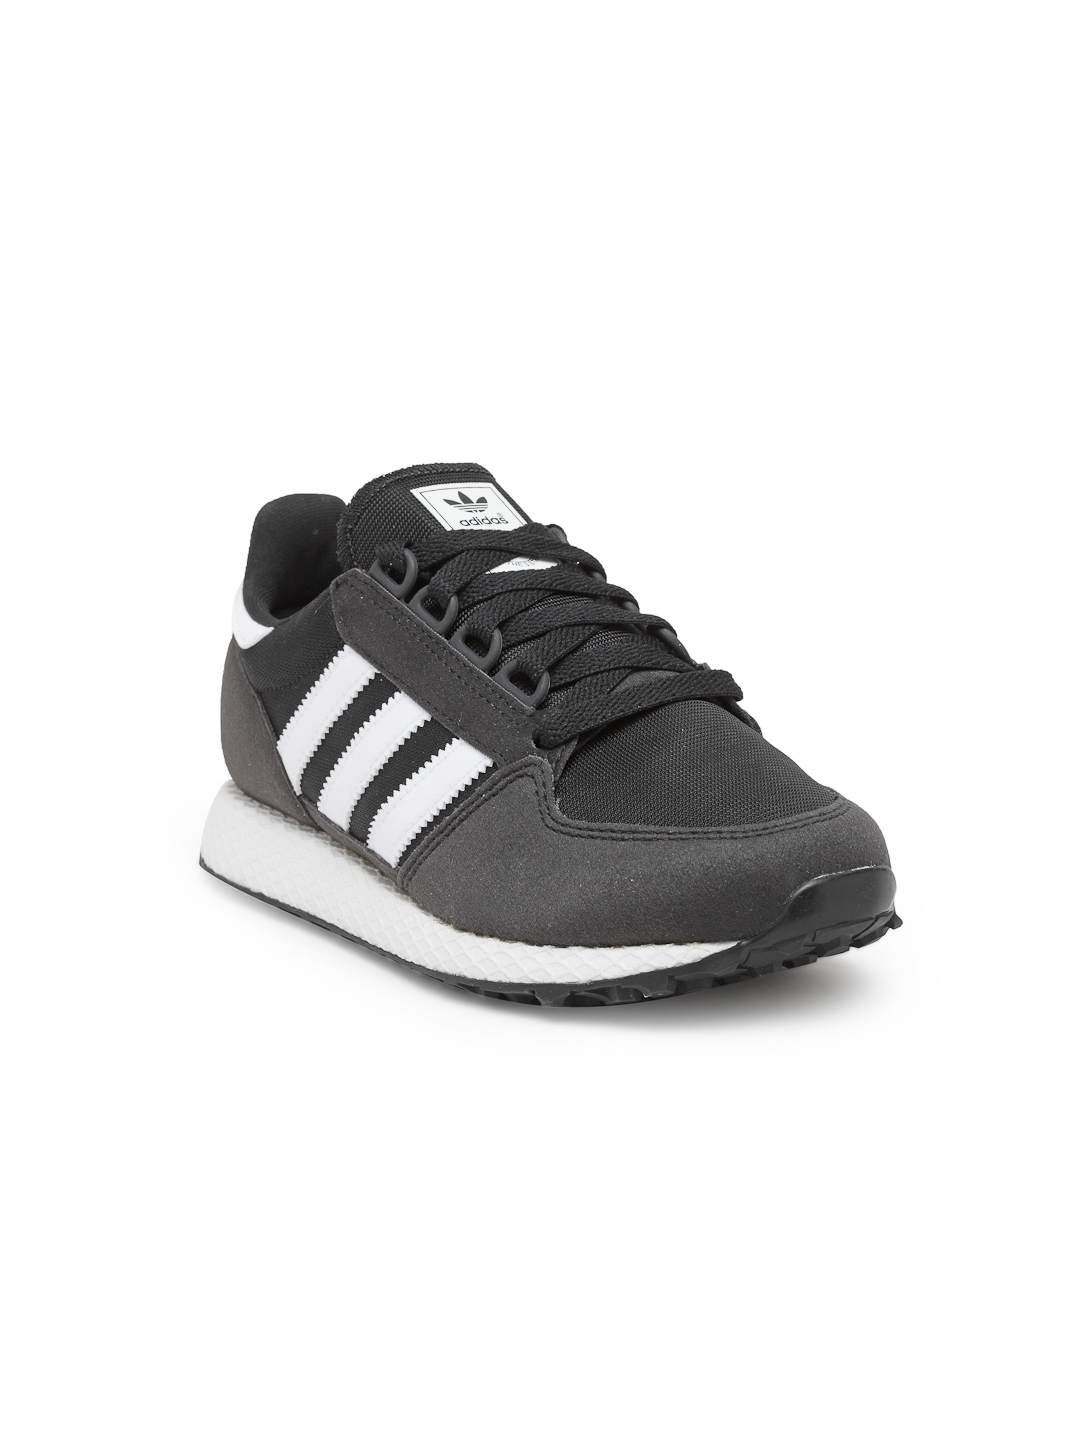 768cf6f01c4 Buy ADIDAS Originals Kids Black Forest Grove Sneakers - Casual Shoes ...